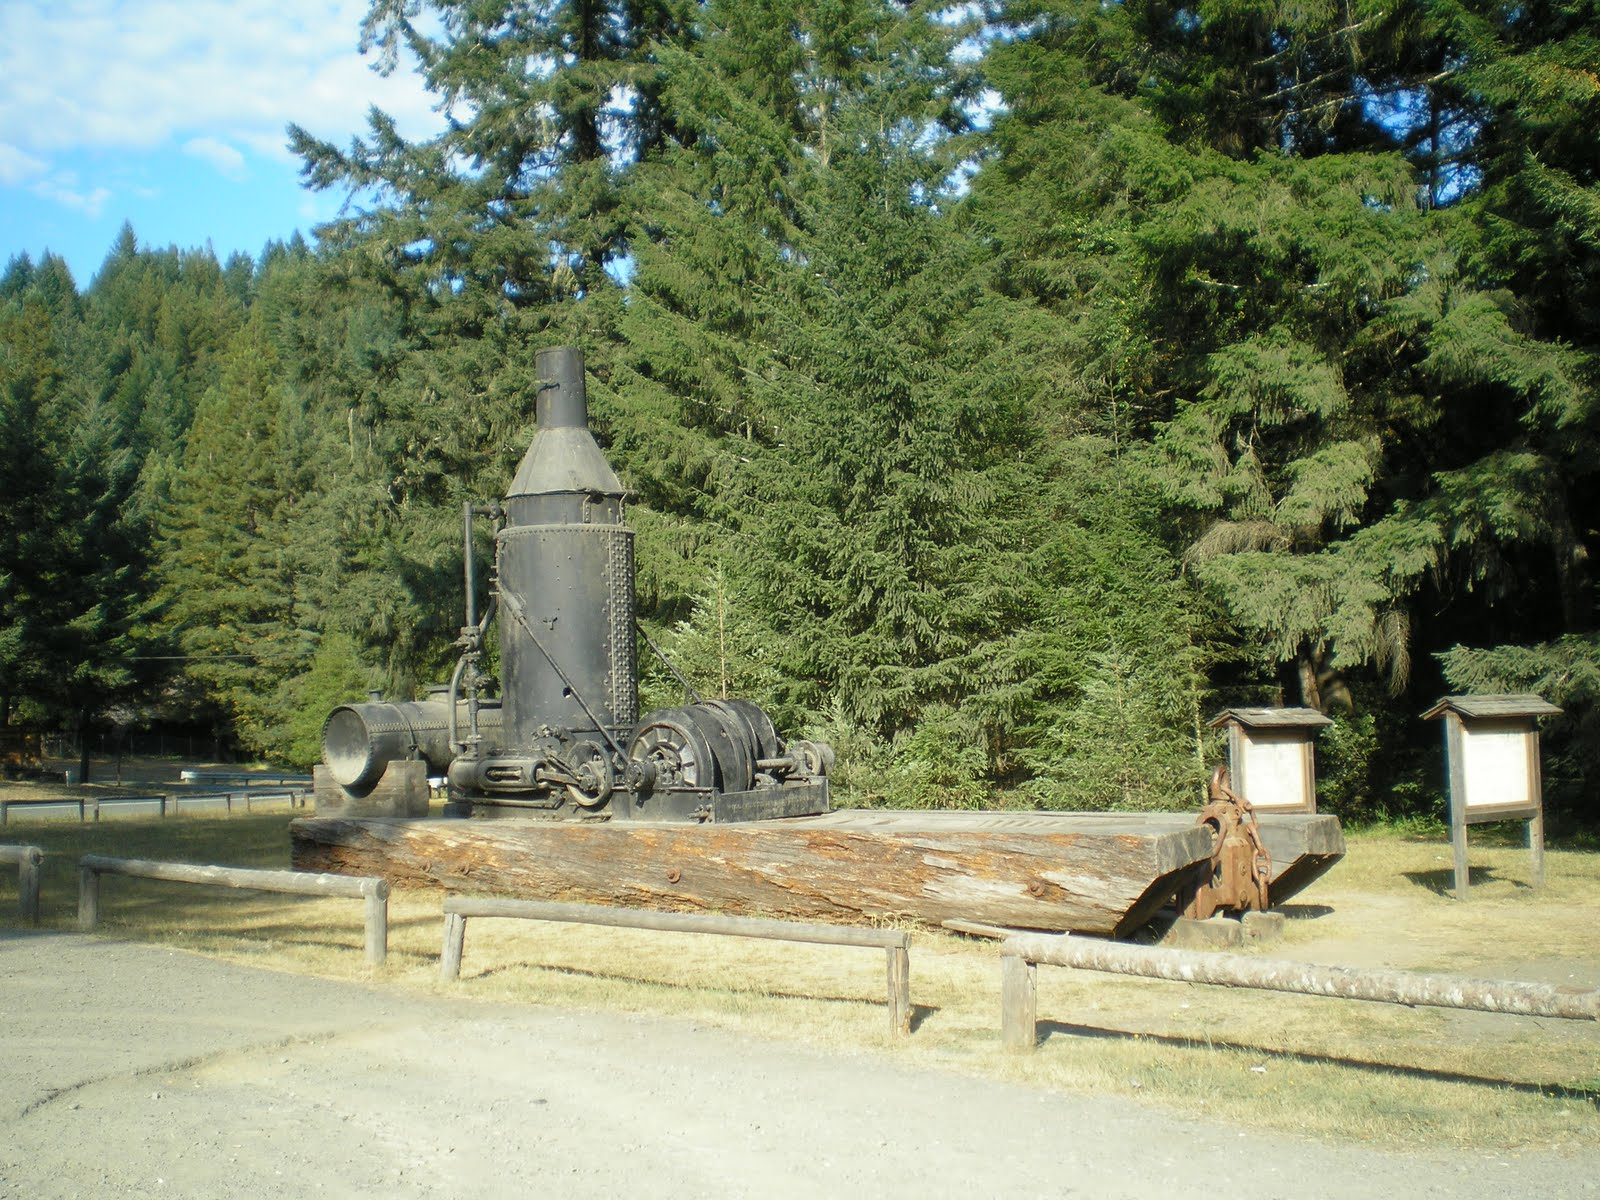 The Road Genealogist Scotia To Willits To Fort Bragg